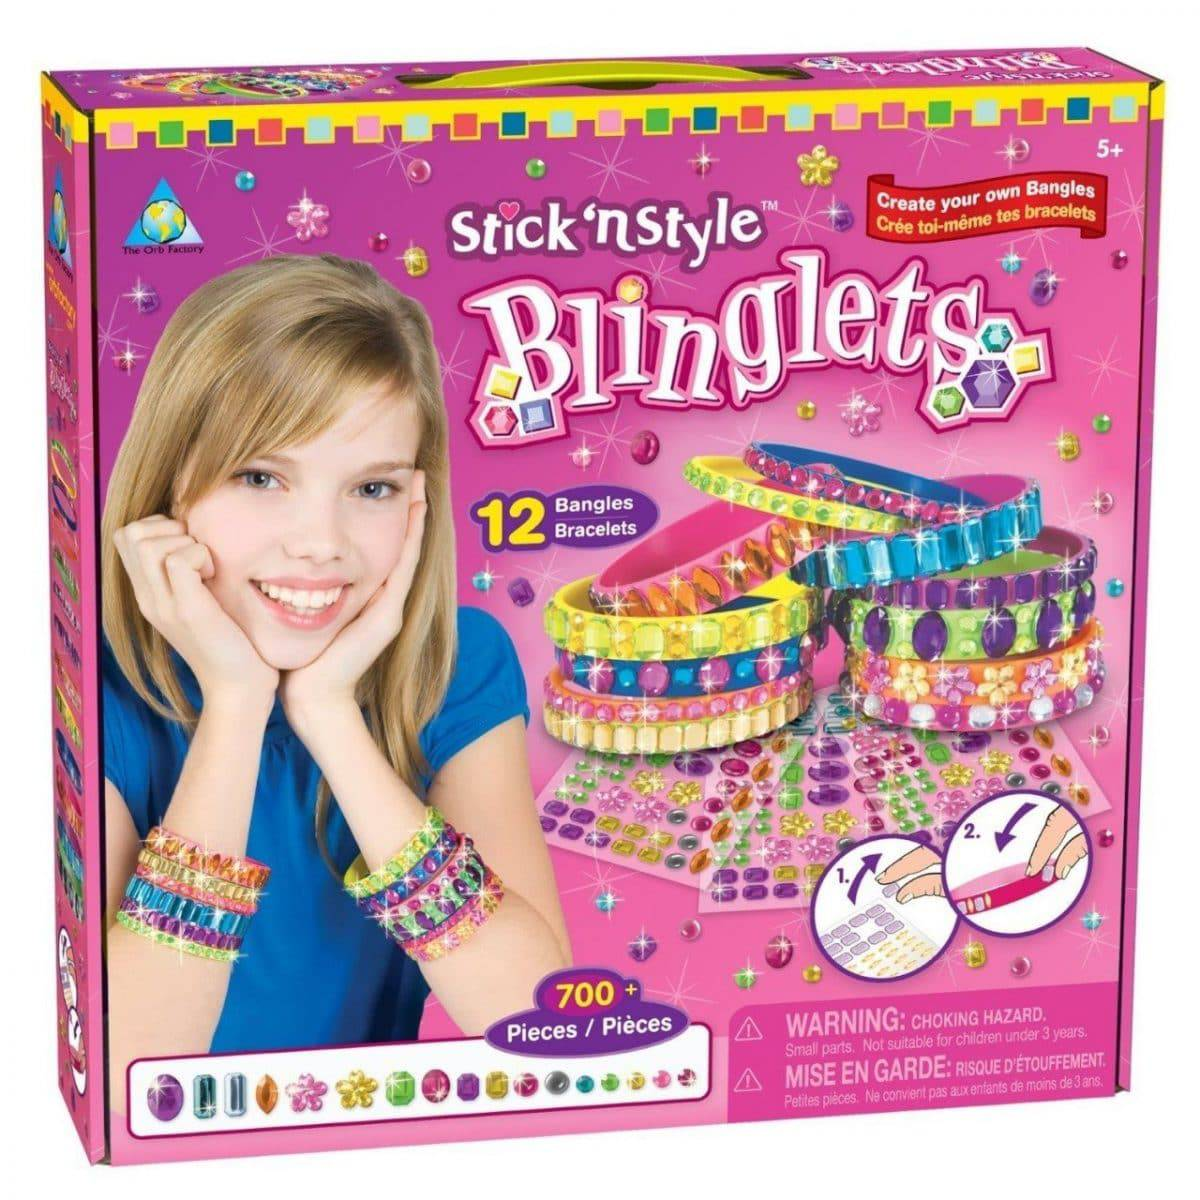 Best Toys And Gift Ideas For 6 Year Old Girls To Buy 2019